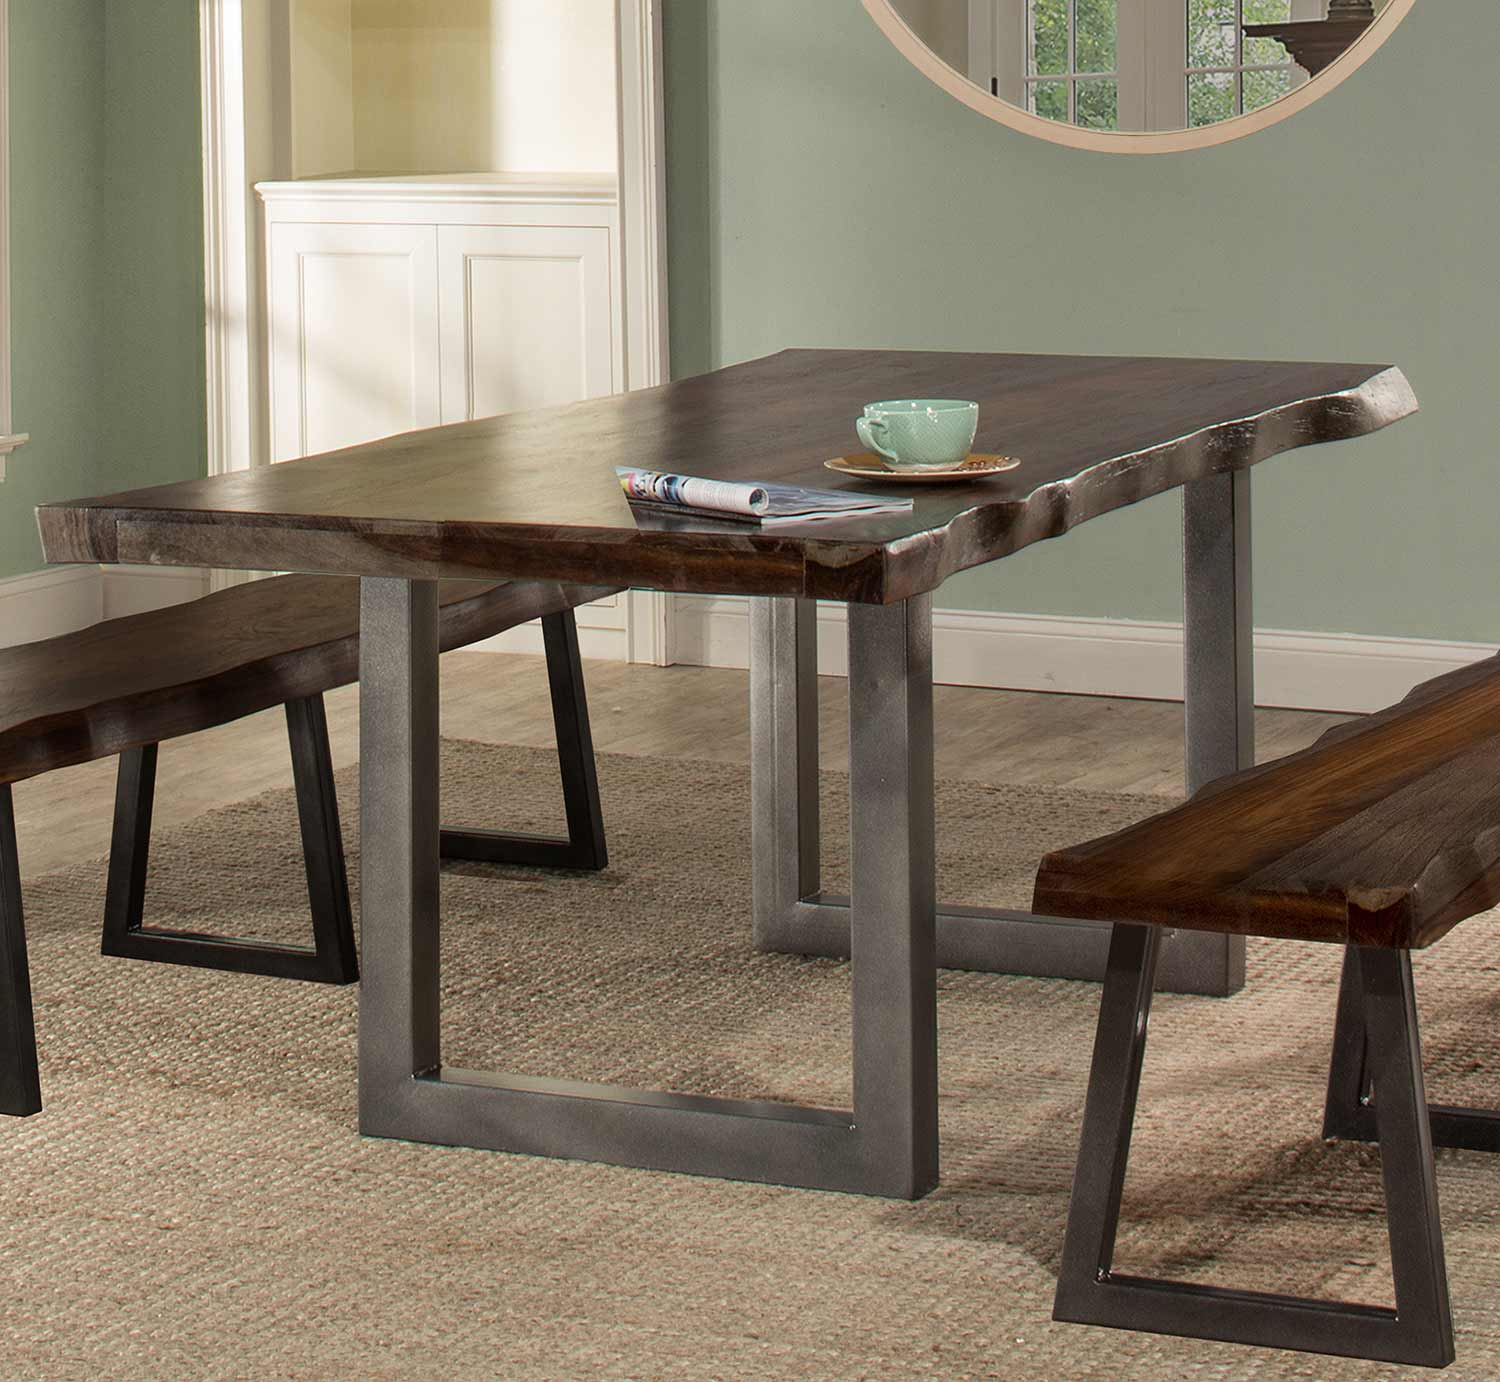 Hilale Emerson Rectangle Dining Table Gray Sheesham